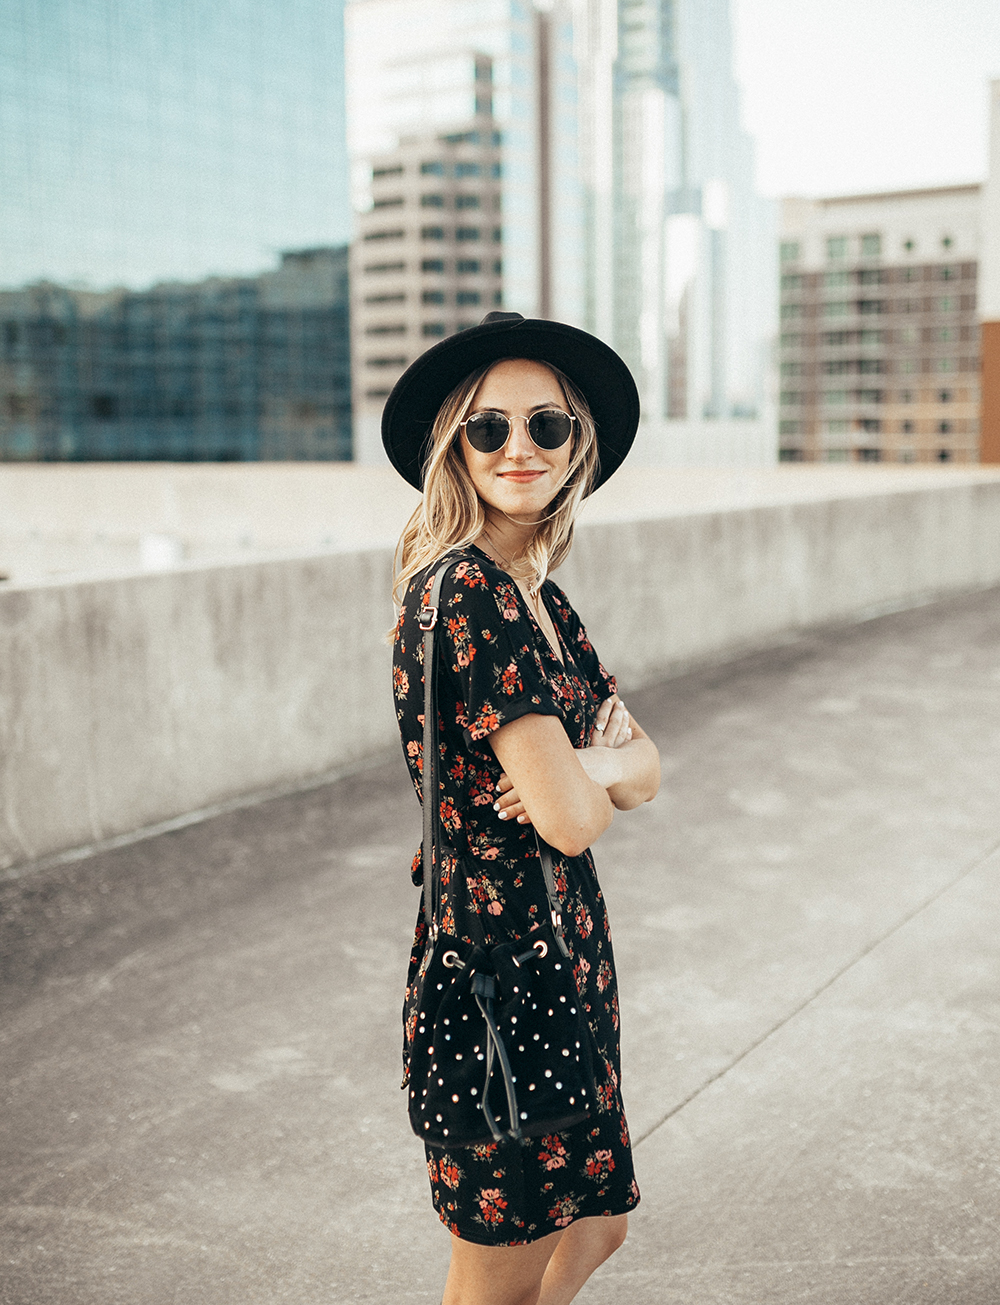 livvyland-blog-olivia-watson-austin-texas-fashion-blogger-austin-city-limits-music-festival-acl-what-to-wear-boho-outfit-inspiration-boohoo-2